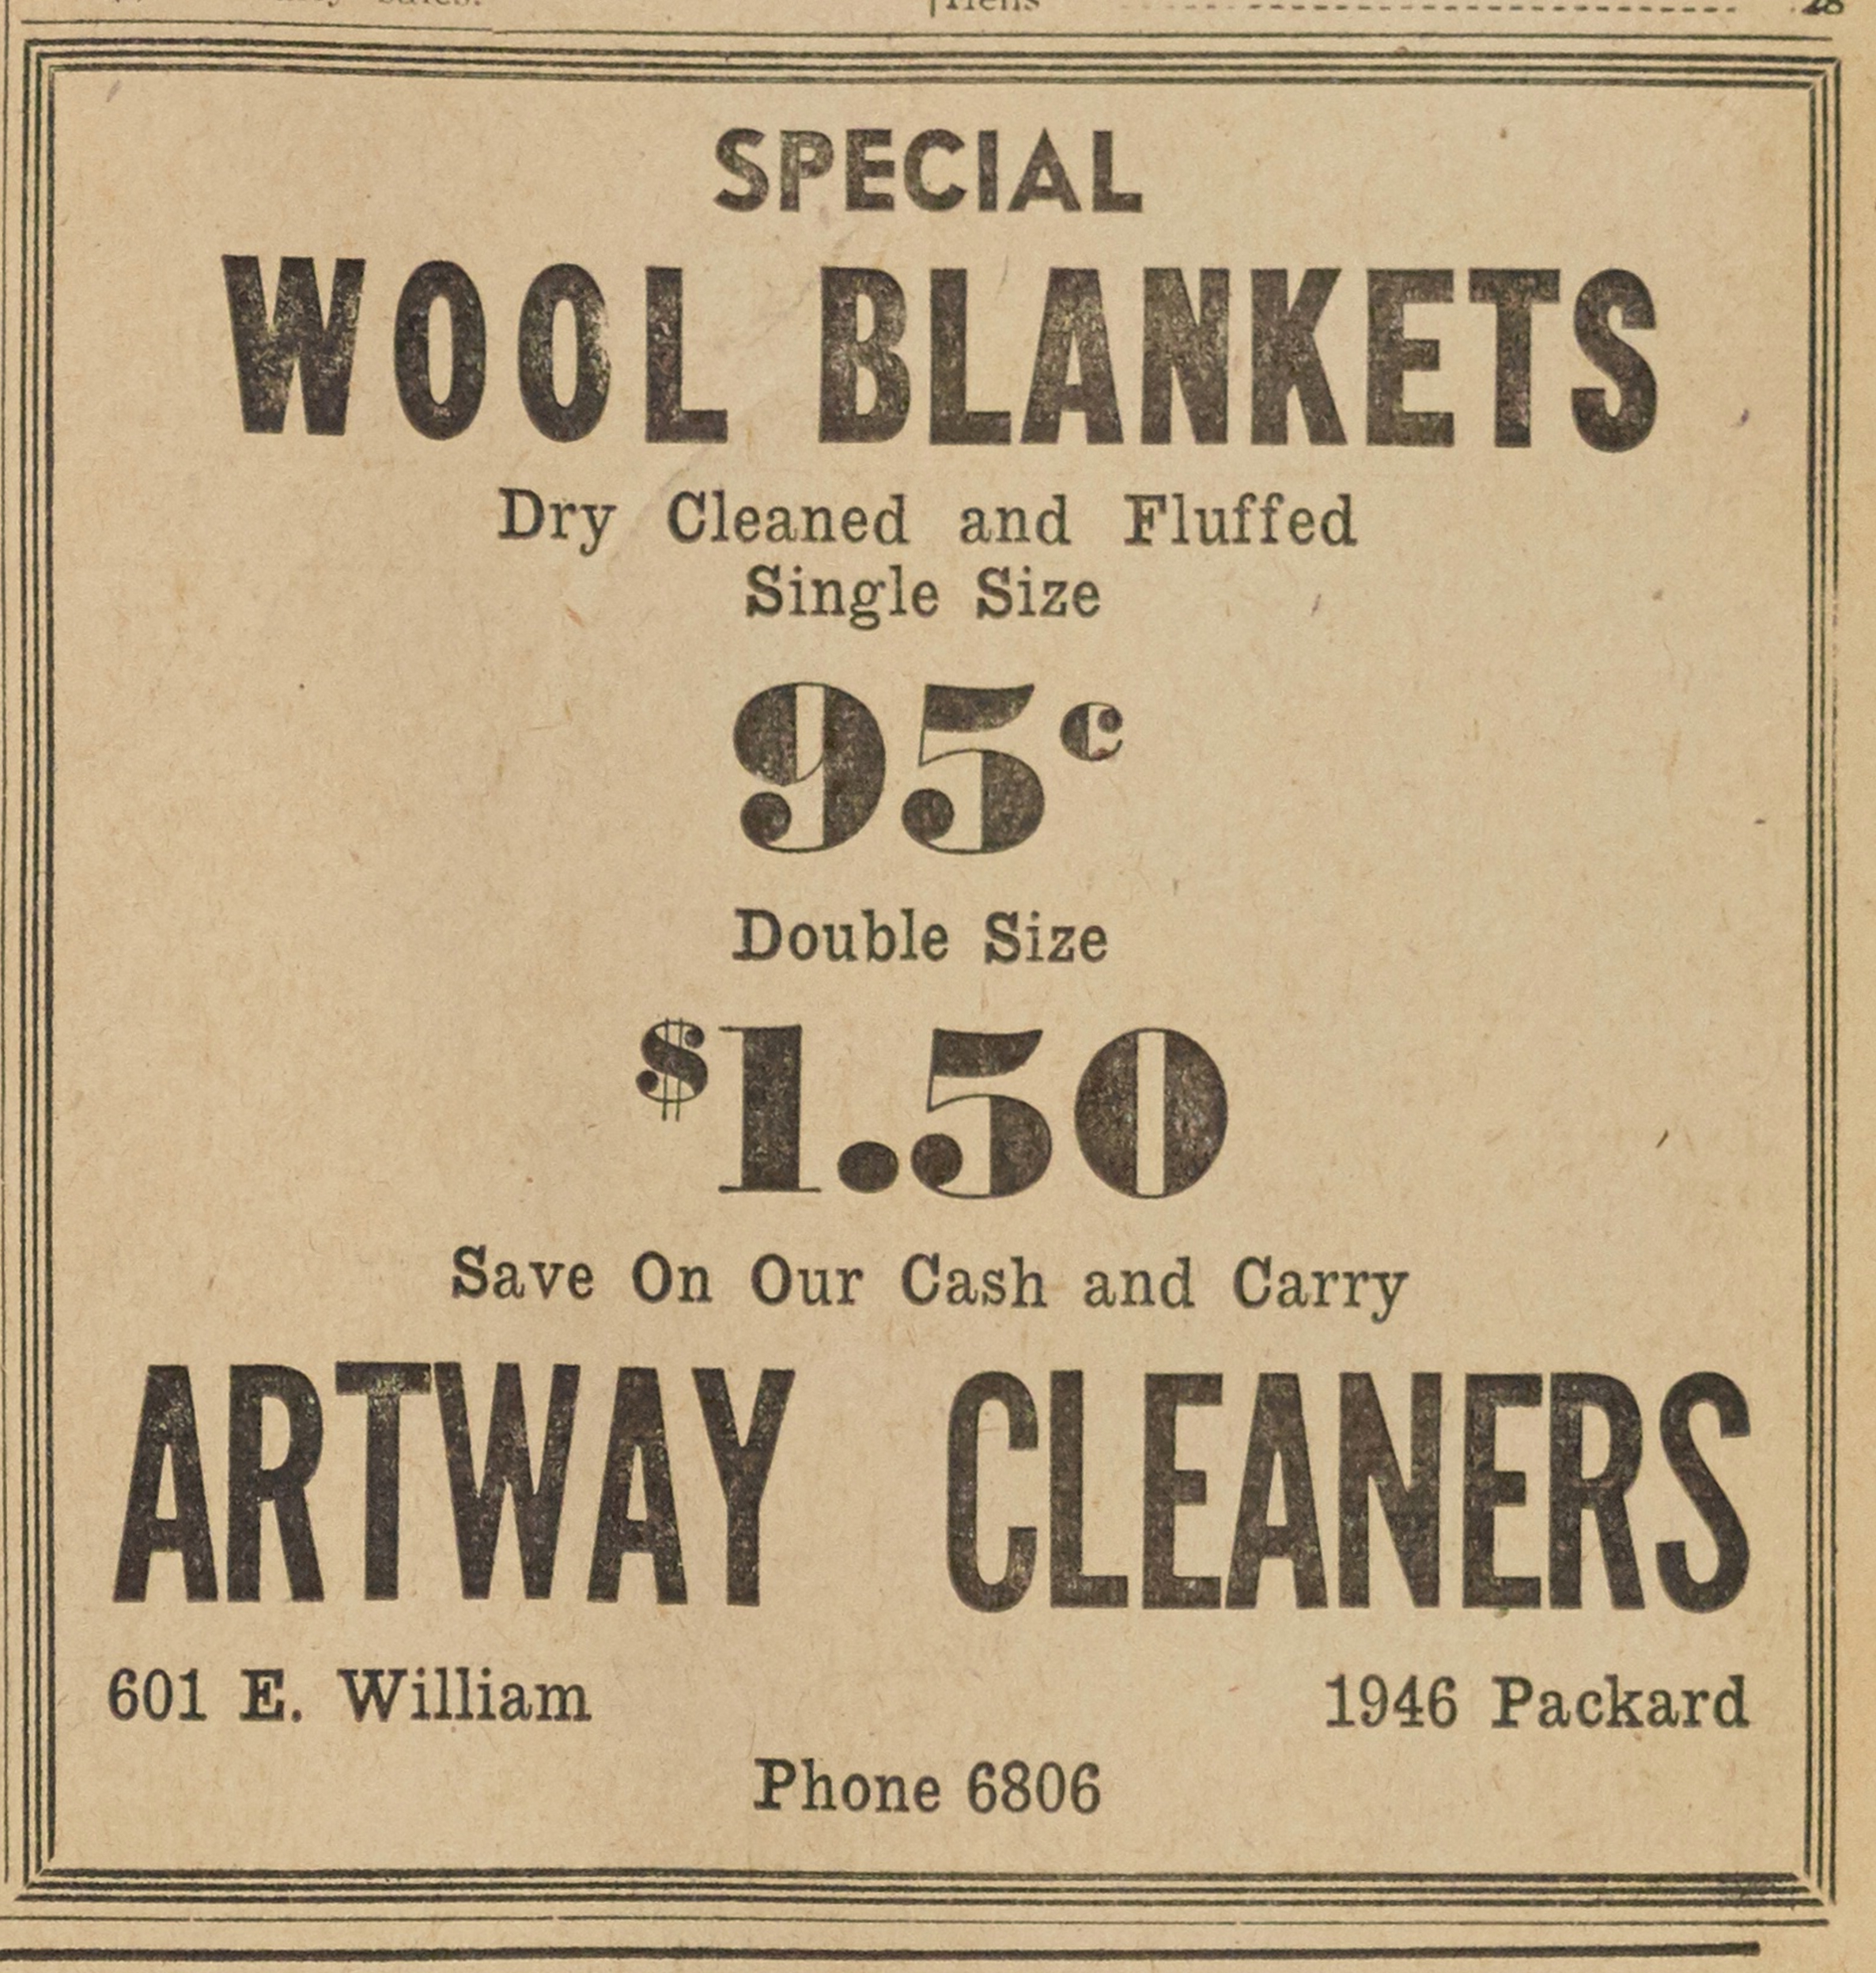 Artway Cleaners image